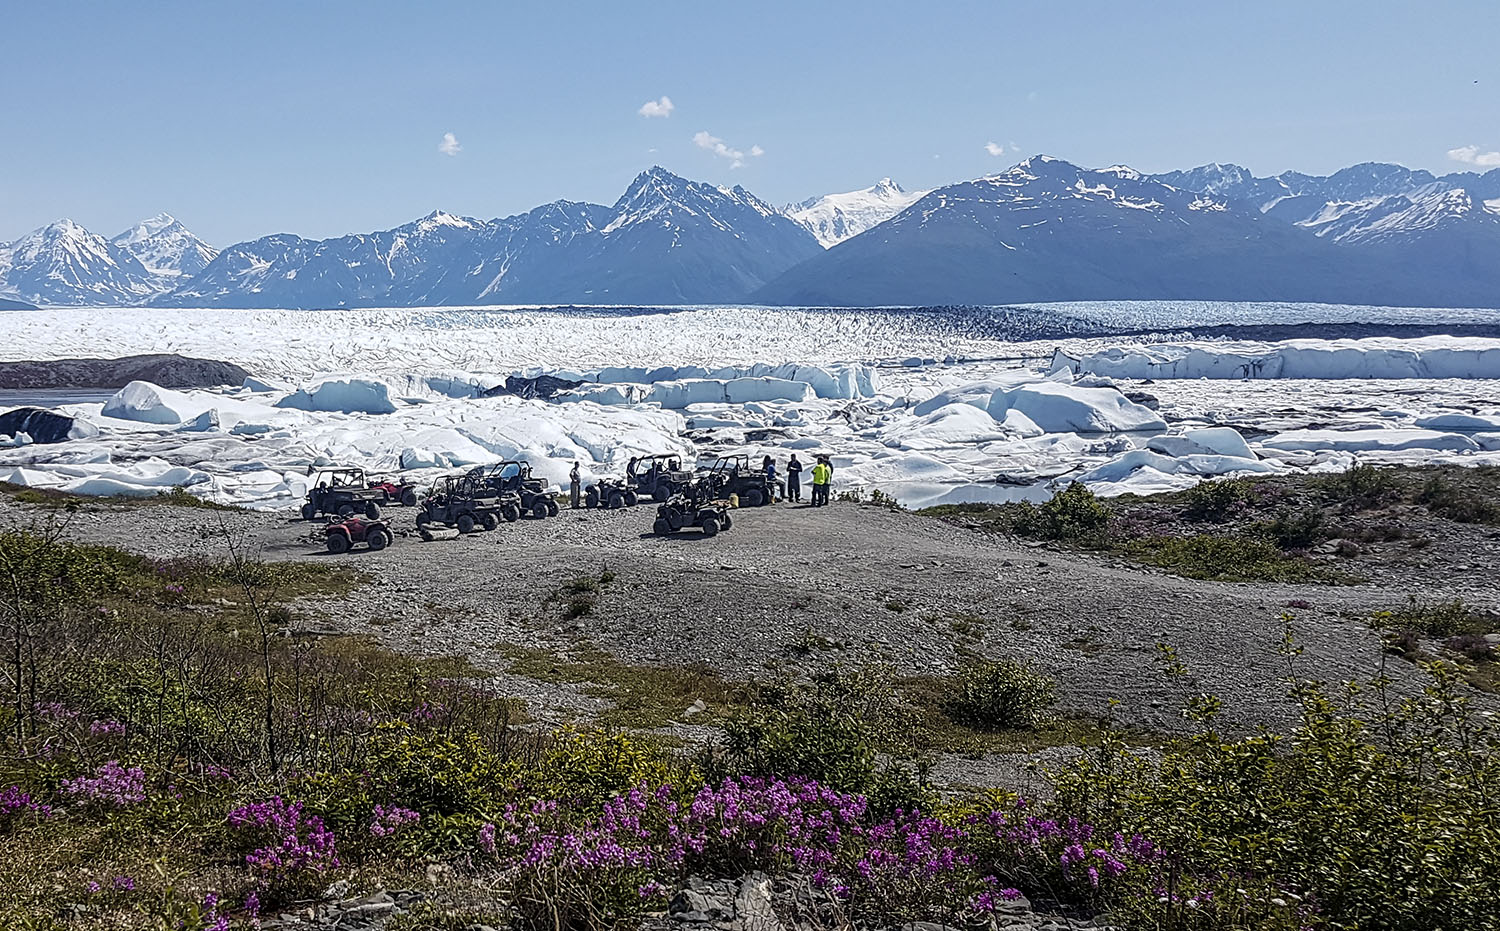 Lunch at the Knik Glacier